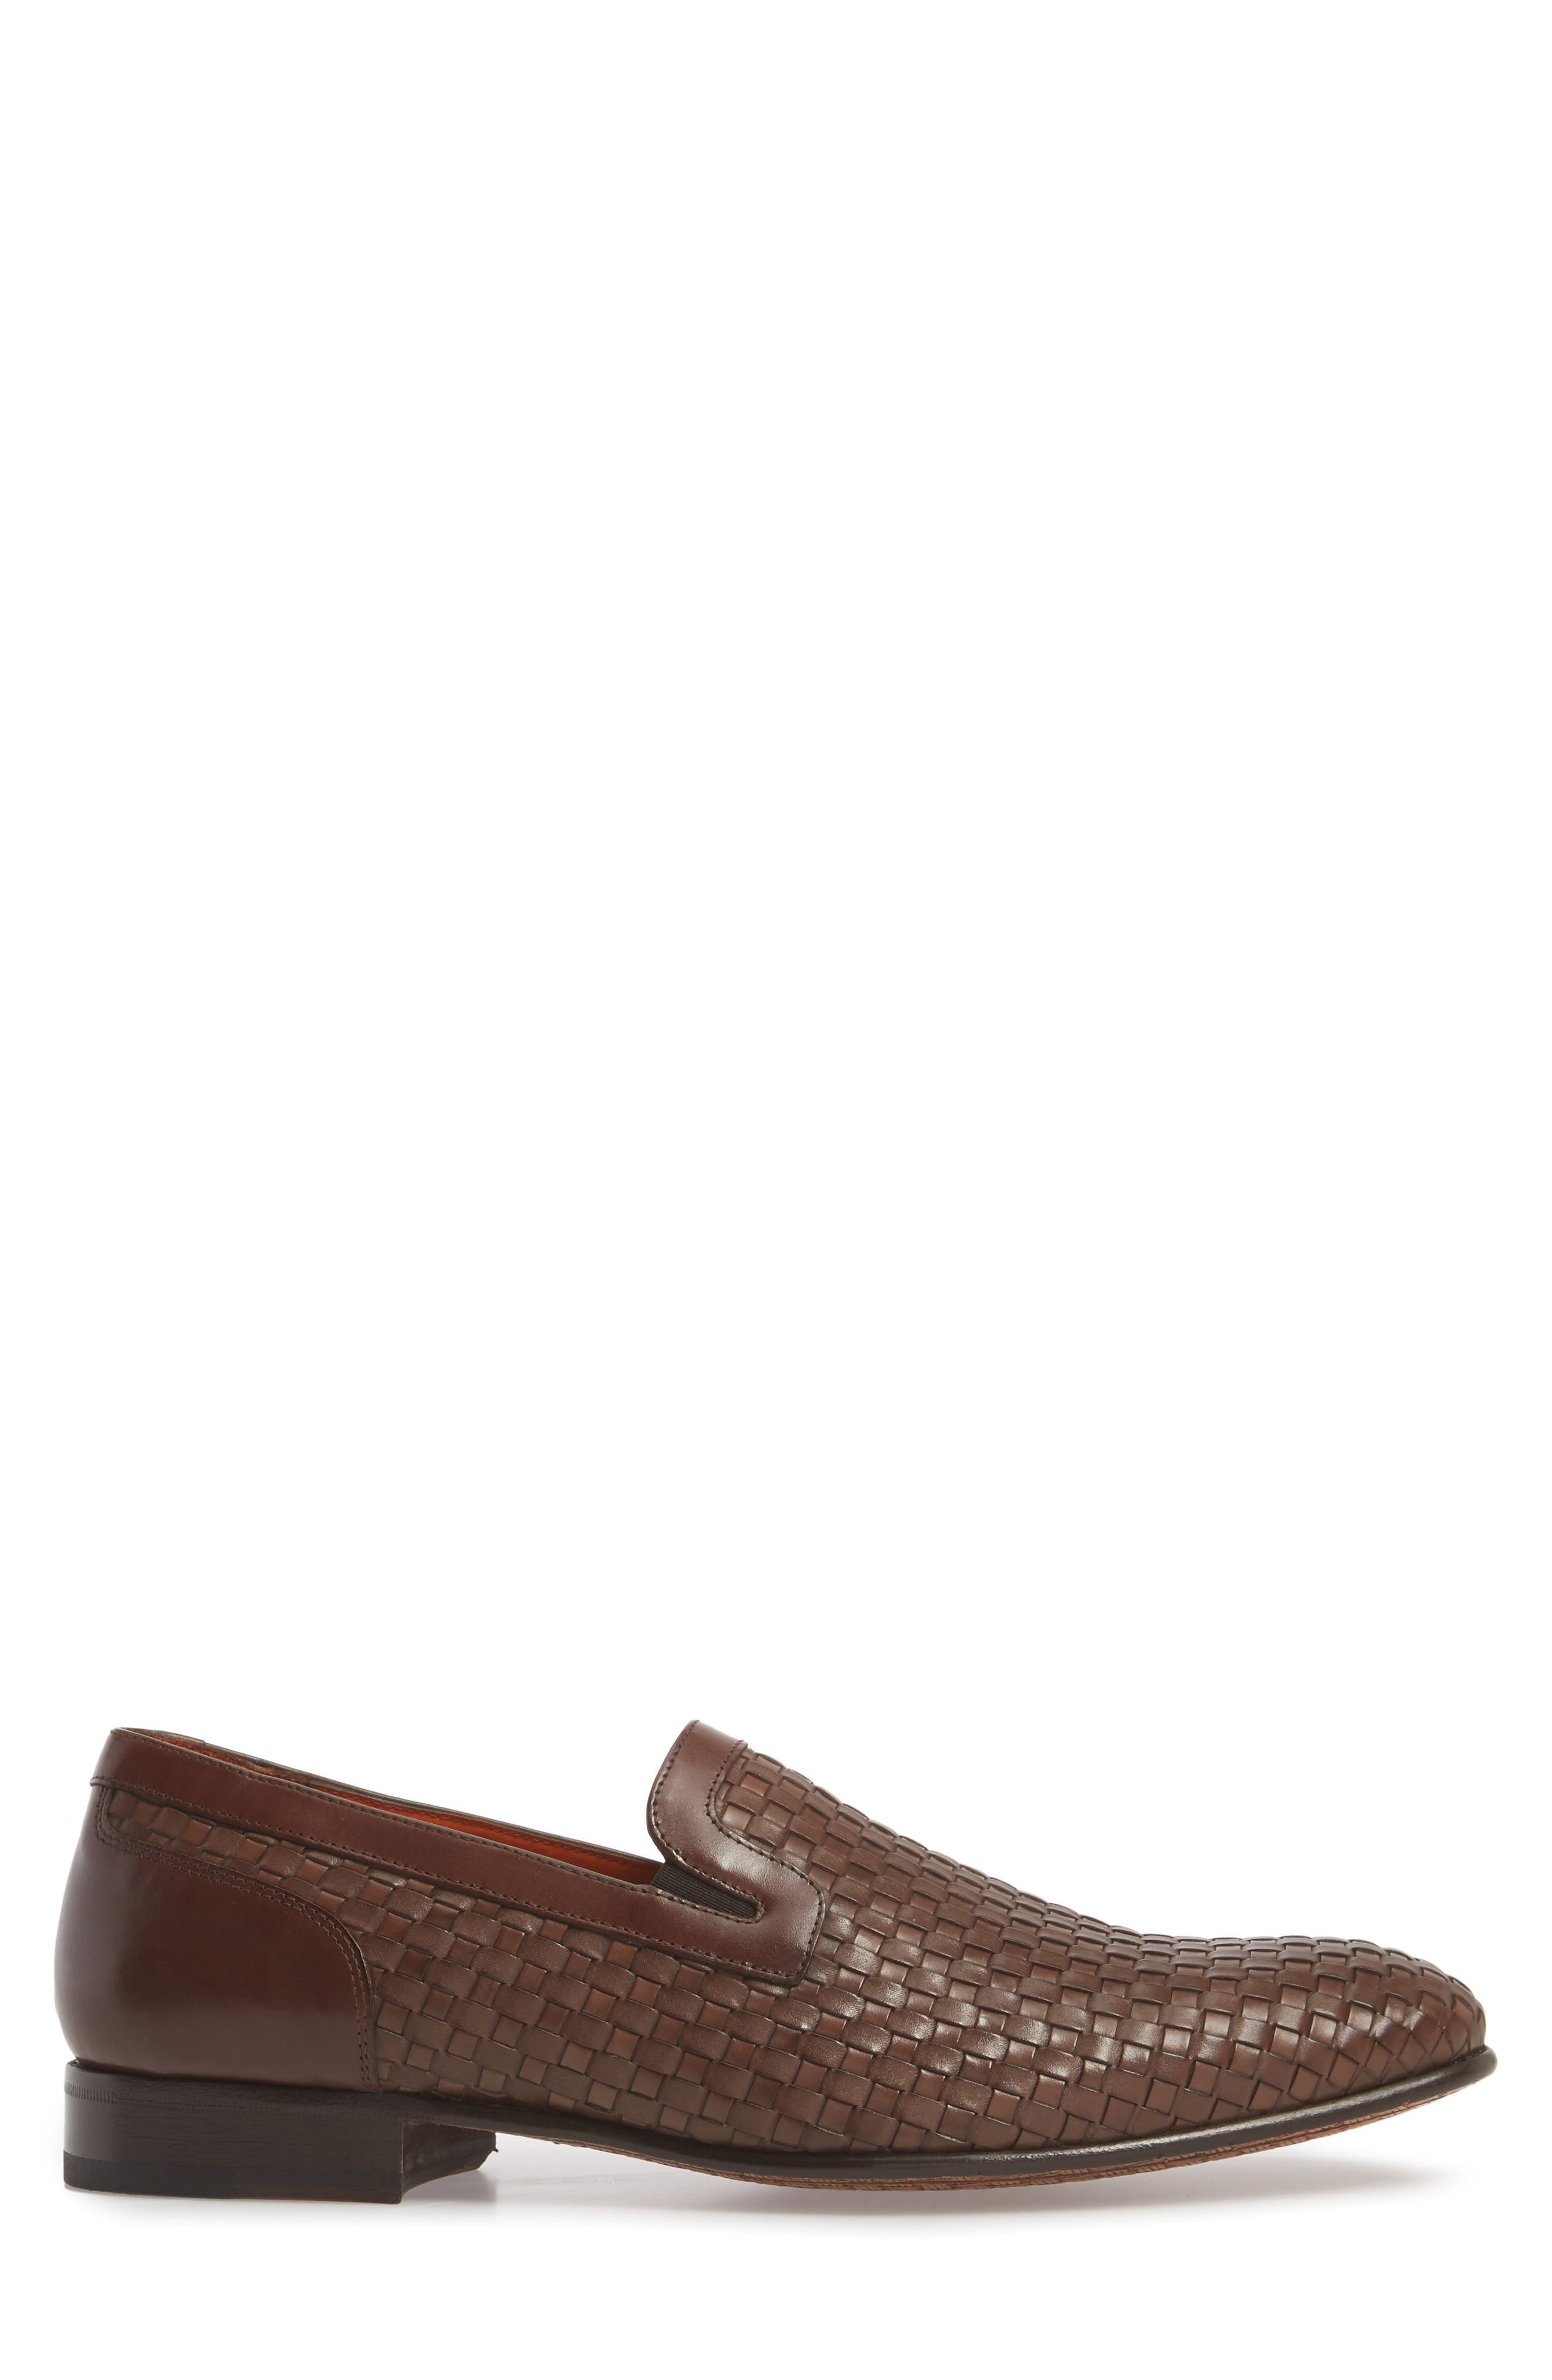 Eliseo Woven Venetian Loafer,                             Alternate thumbnail 3, color,                             Brown Leather